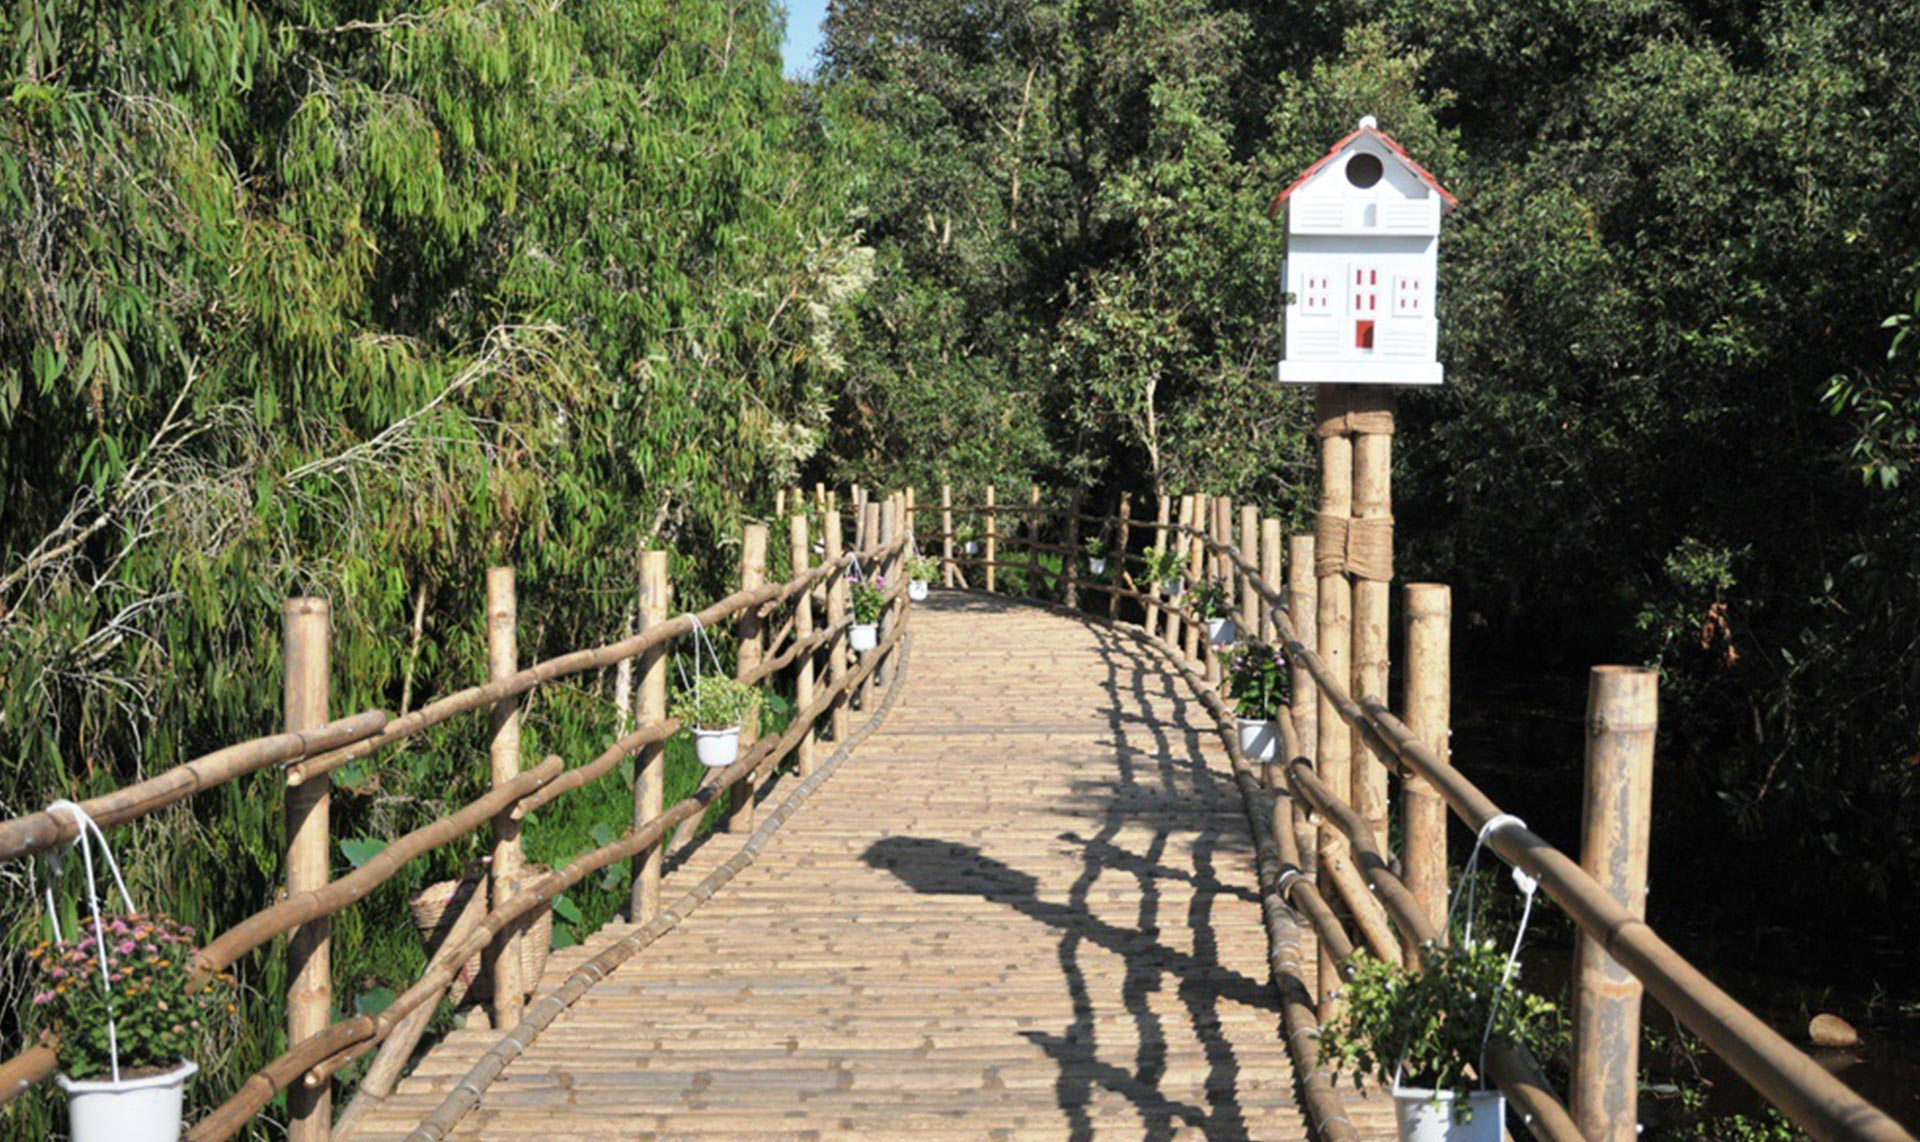 Tra Su bamboo bridge is made by bamboo